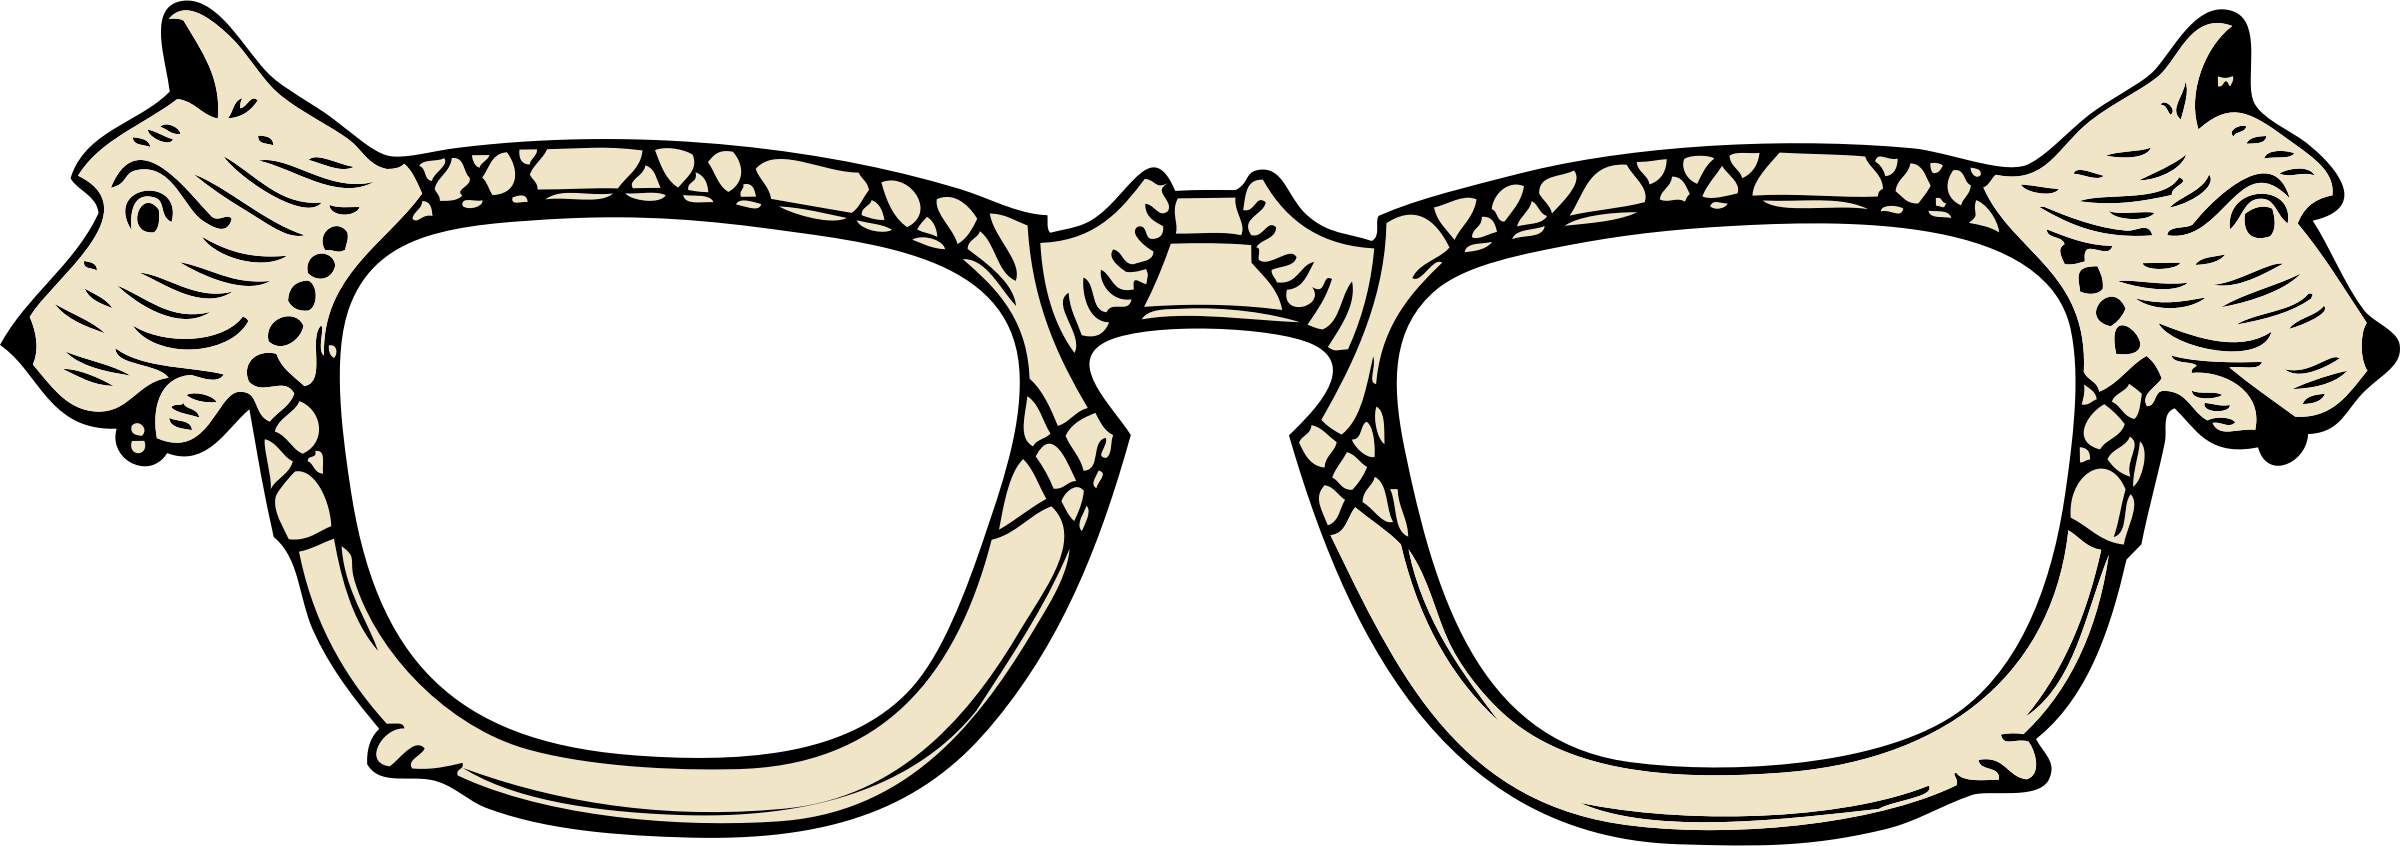 Scottie dog icons png. Clipart glasses science